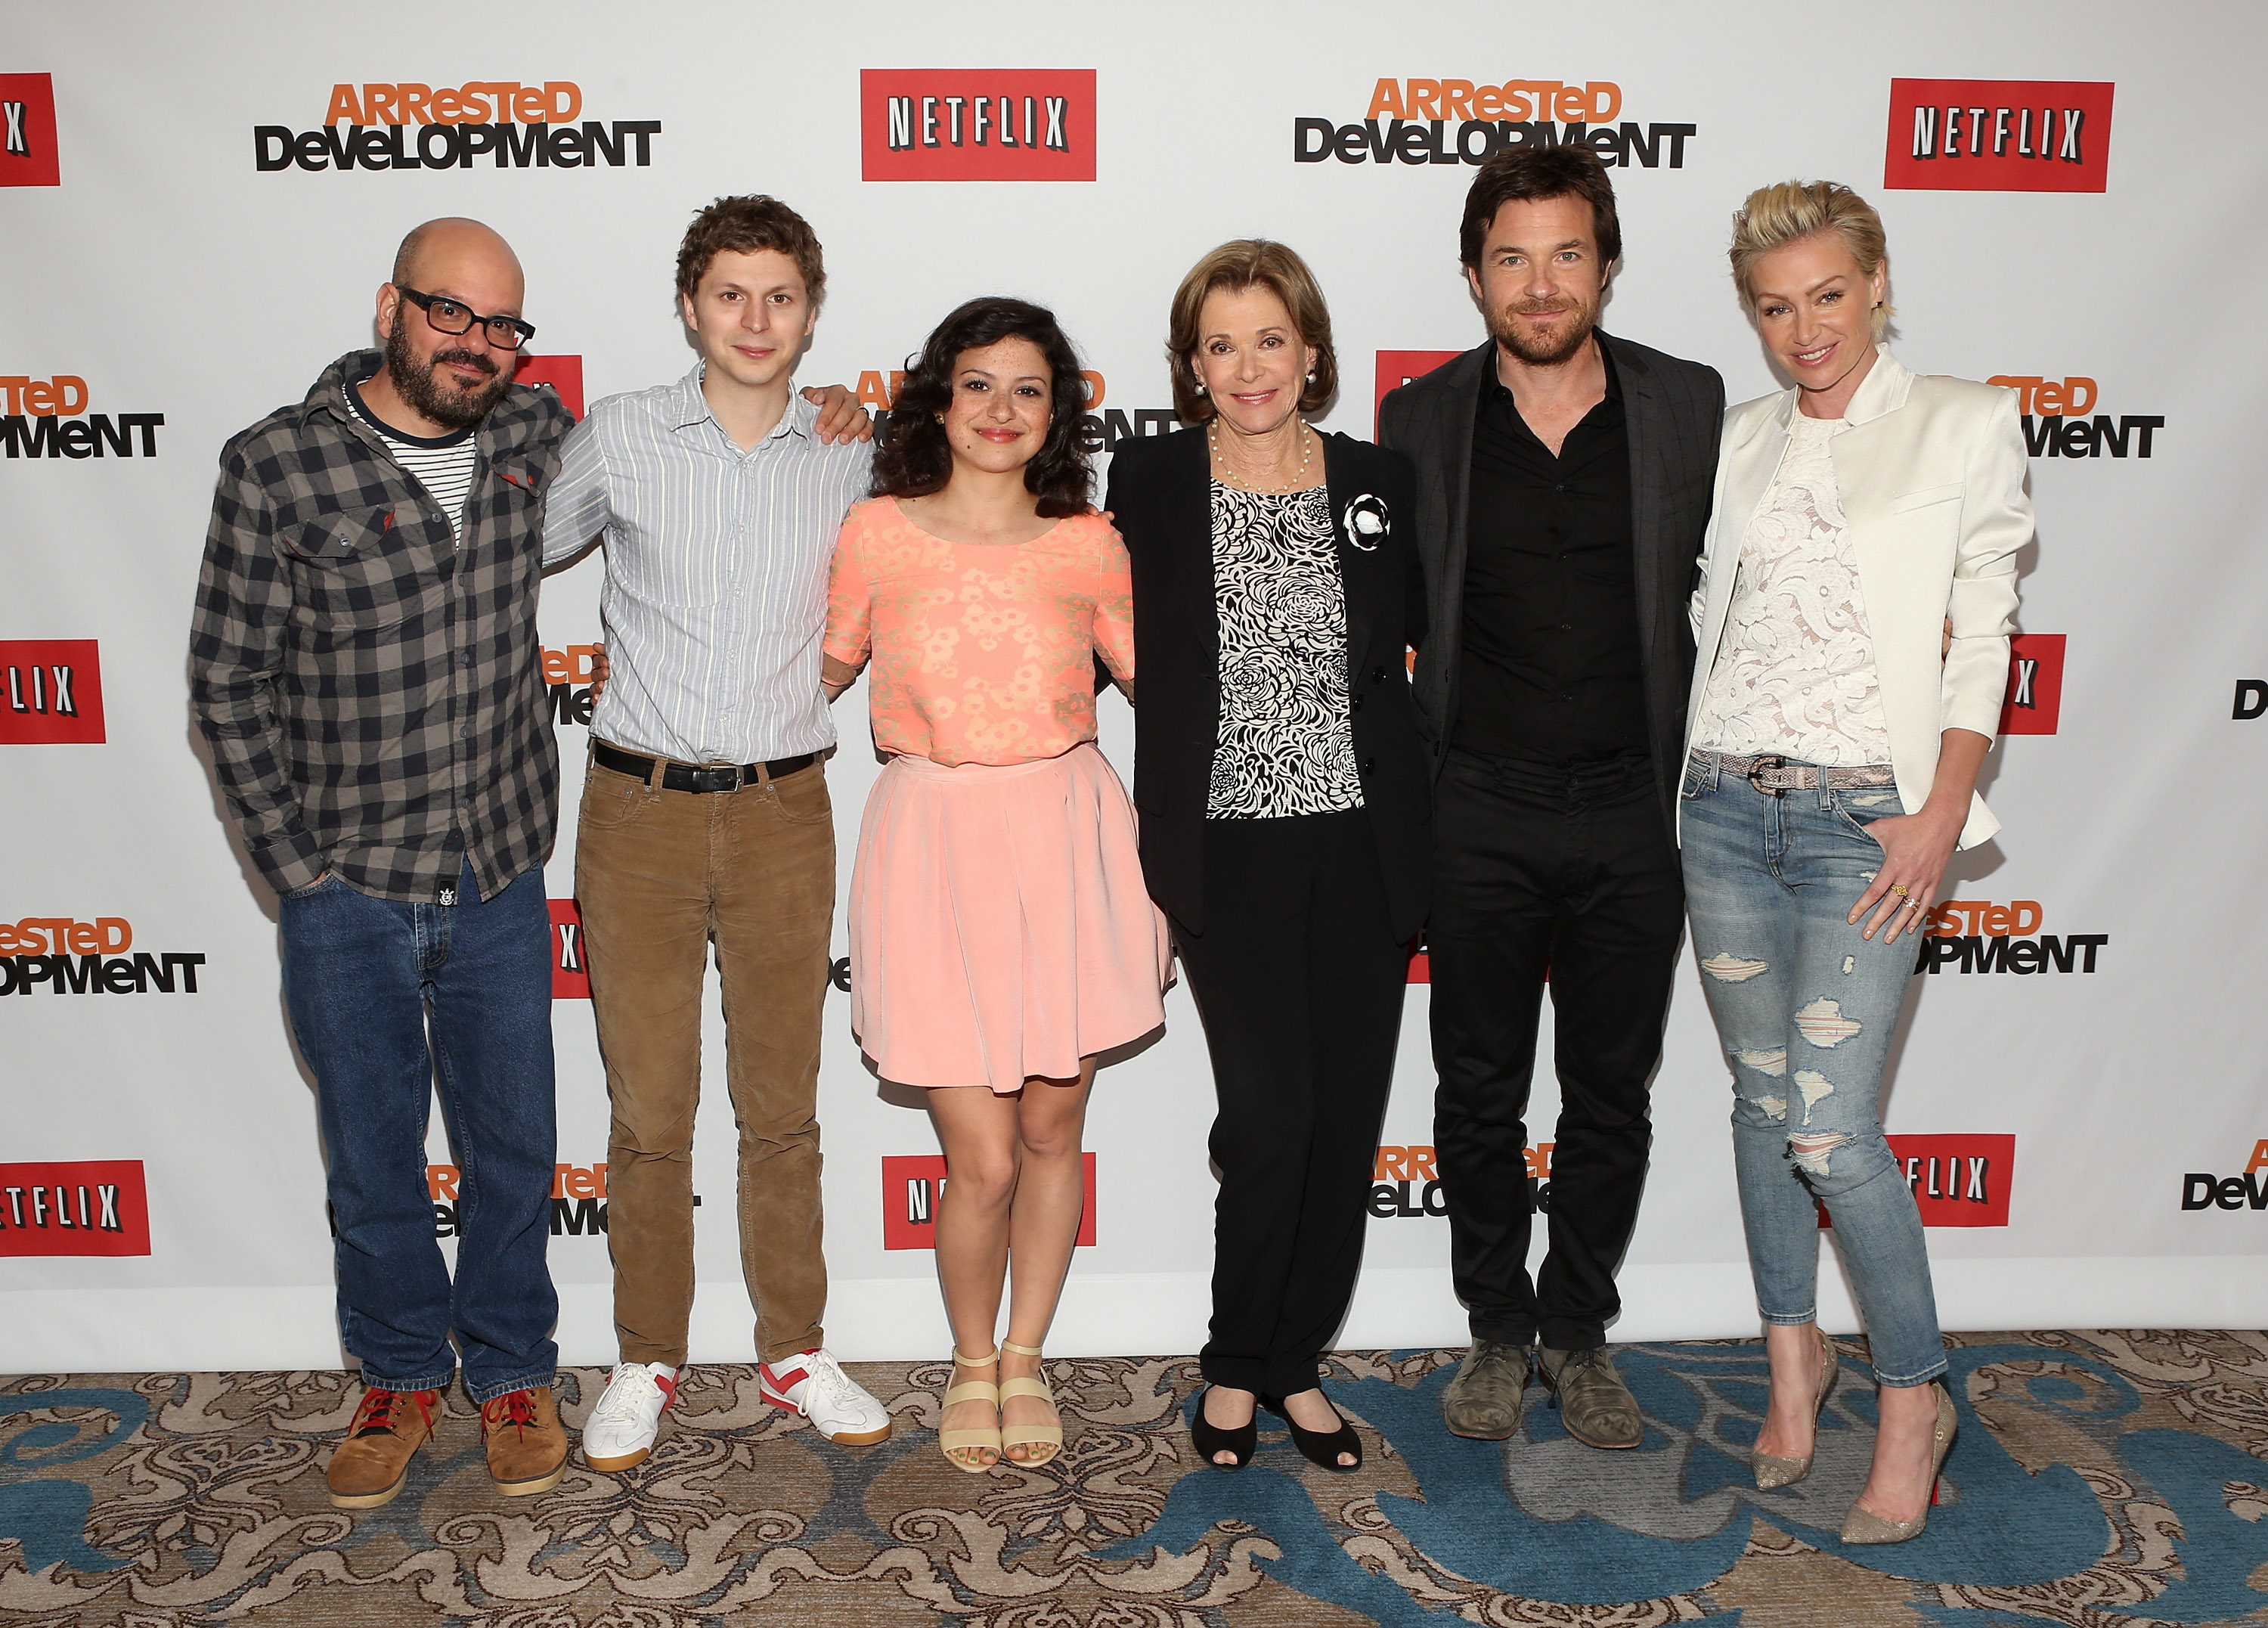 Lucille Bluth says everybody's 'on board' for Arrested Development season 5